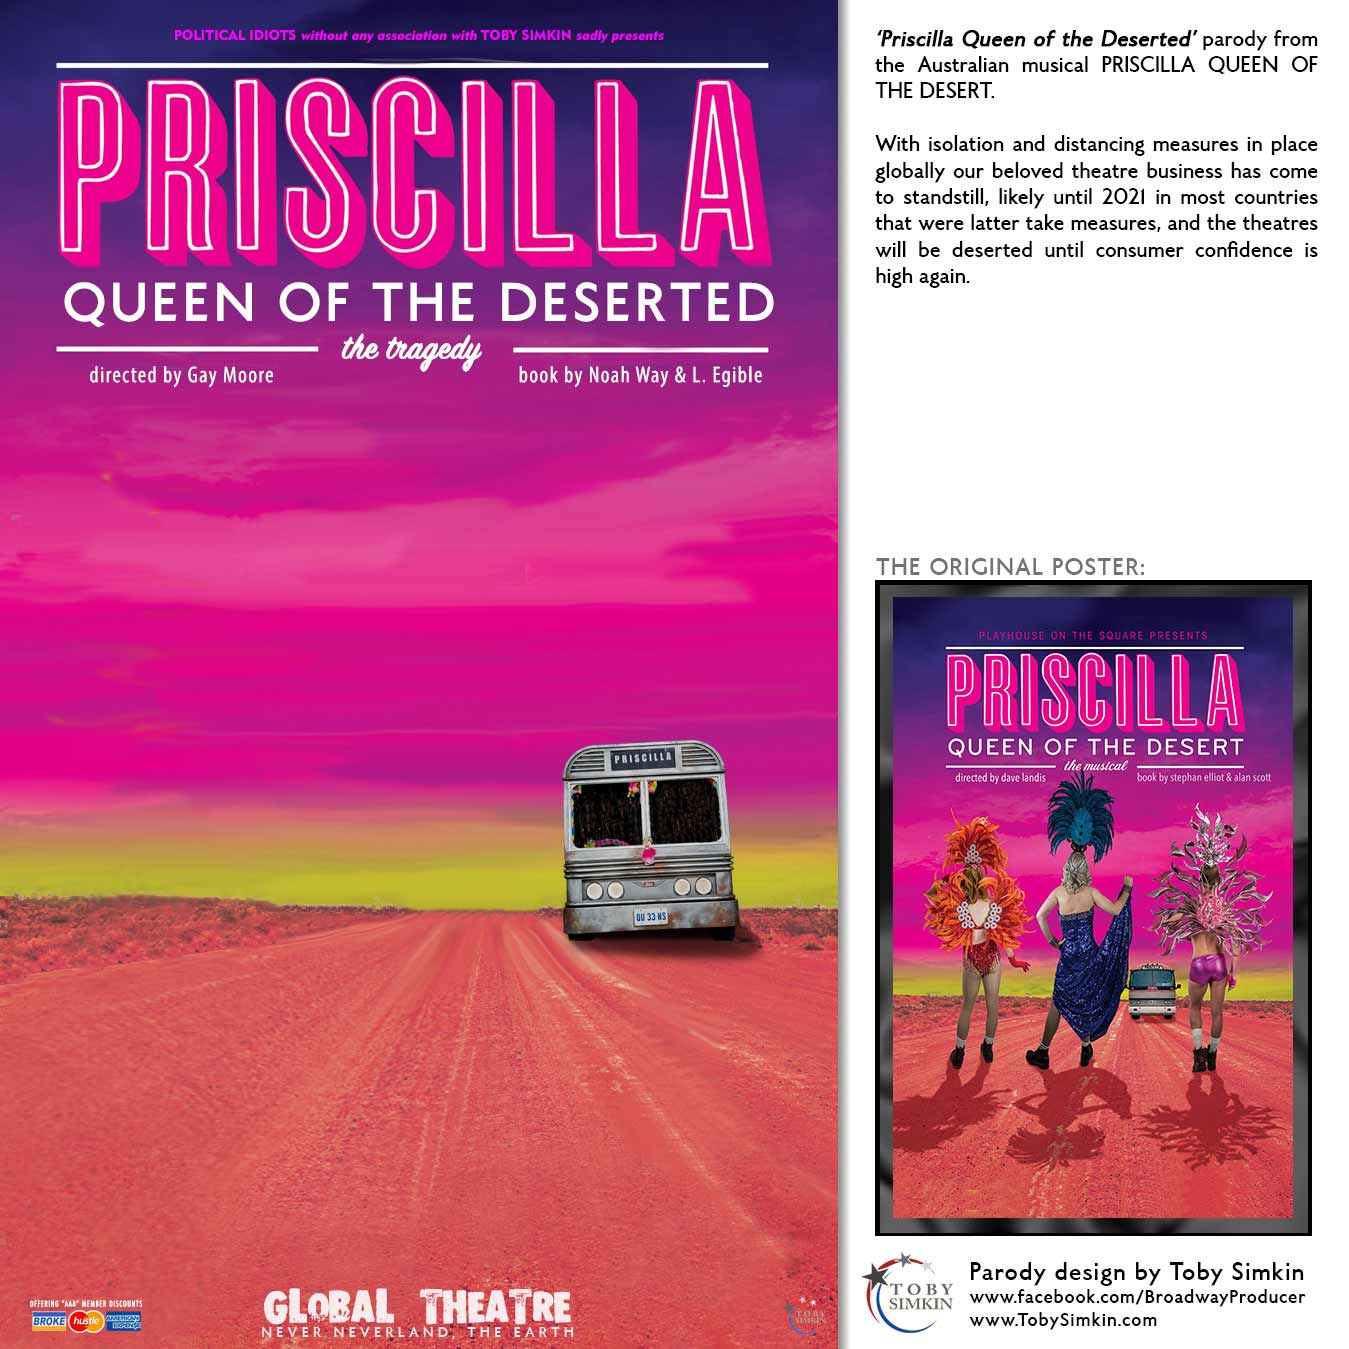 parody from the Australian musical PRISCILLA QUEEN OF THE DESERT